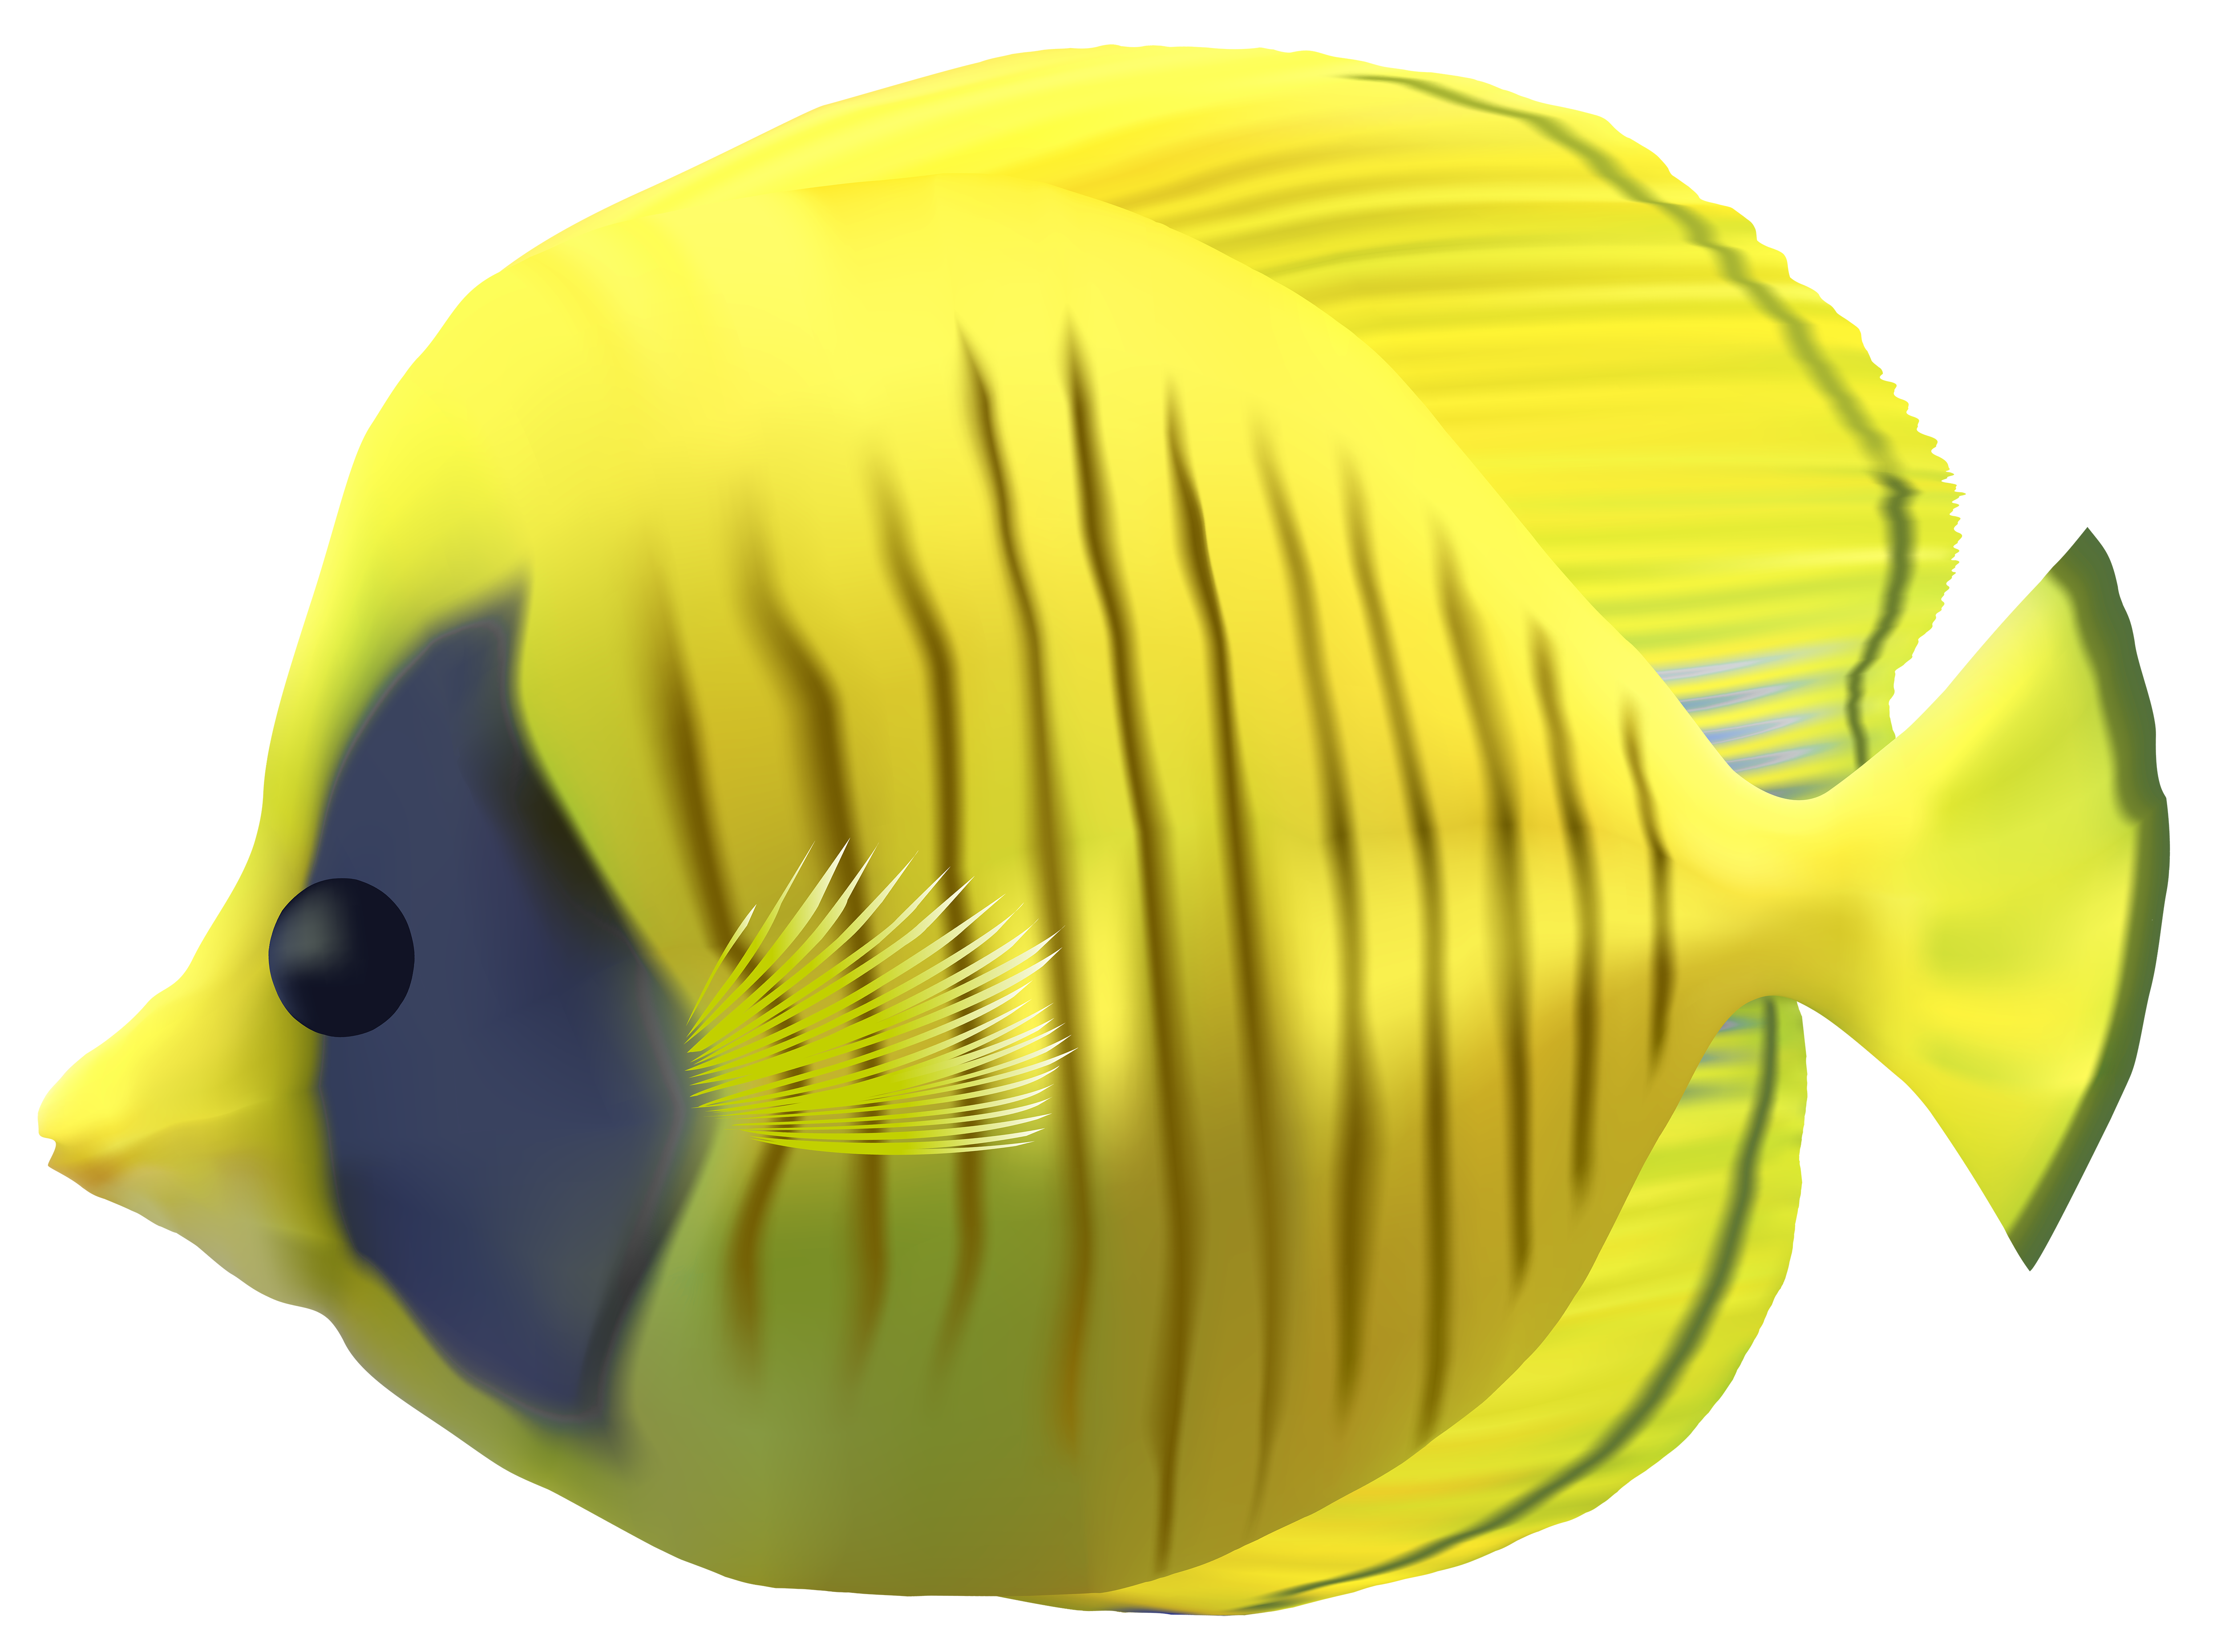 Yellow fish clipart image free Clipart fish transparent background - Graphics - Illustrations ... image free